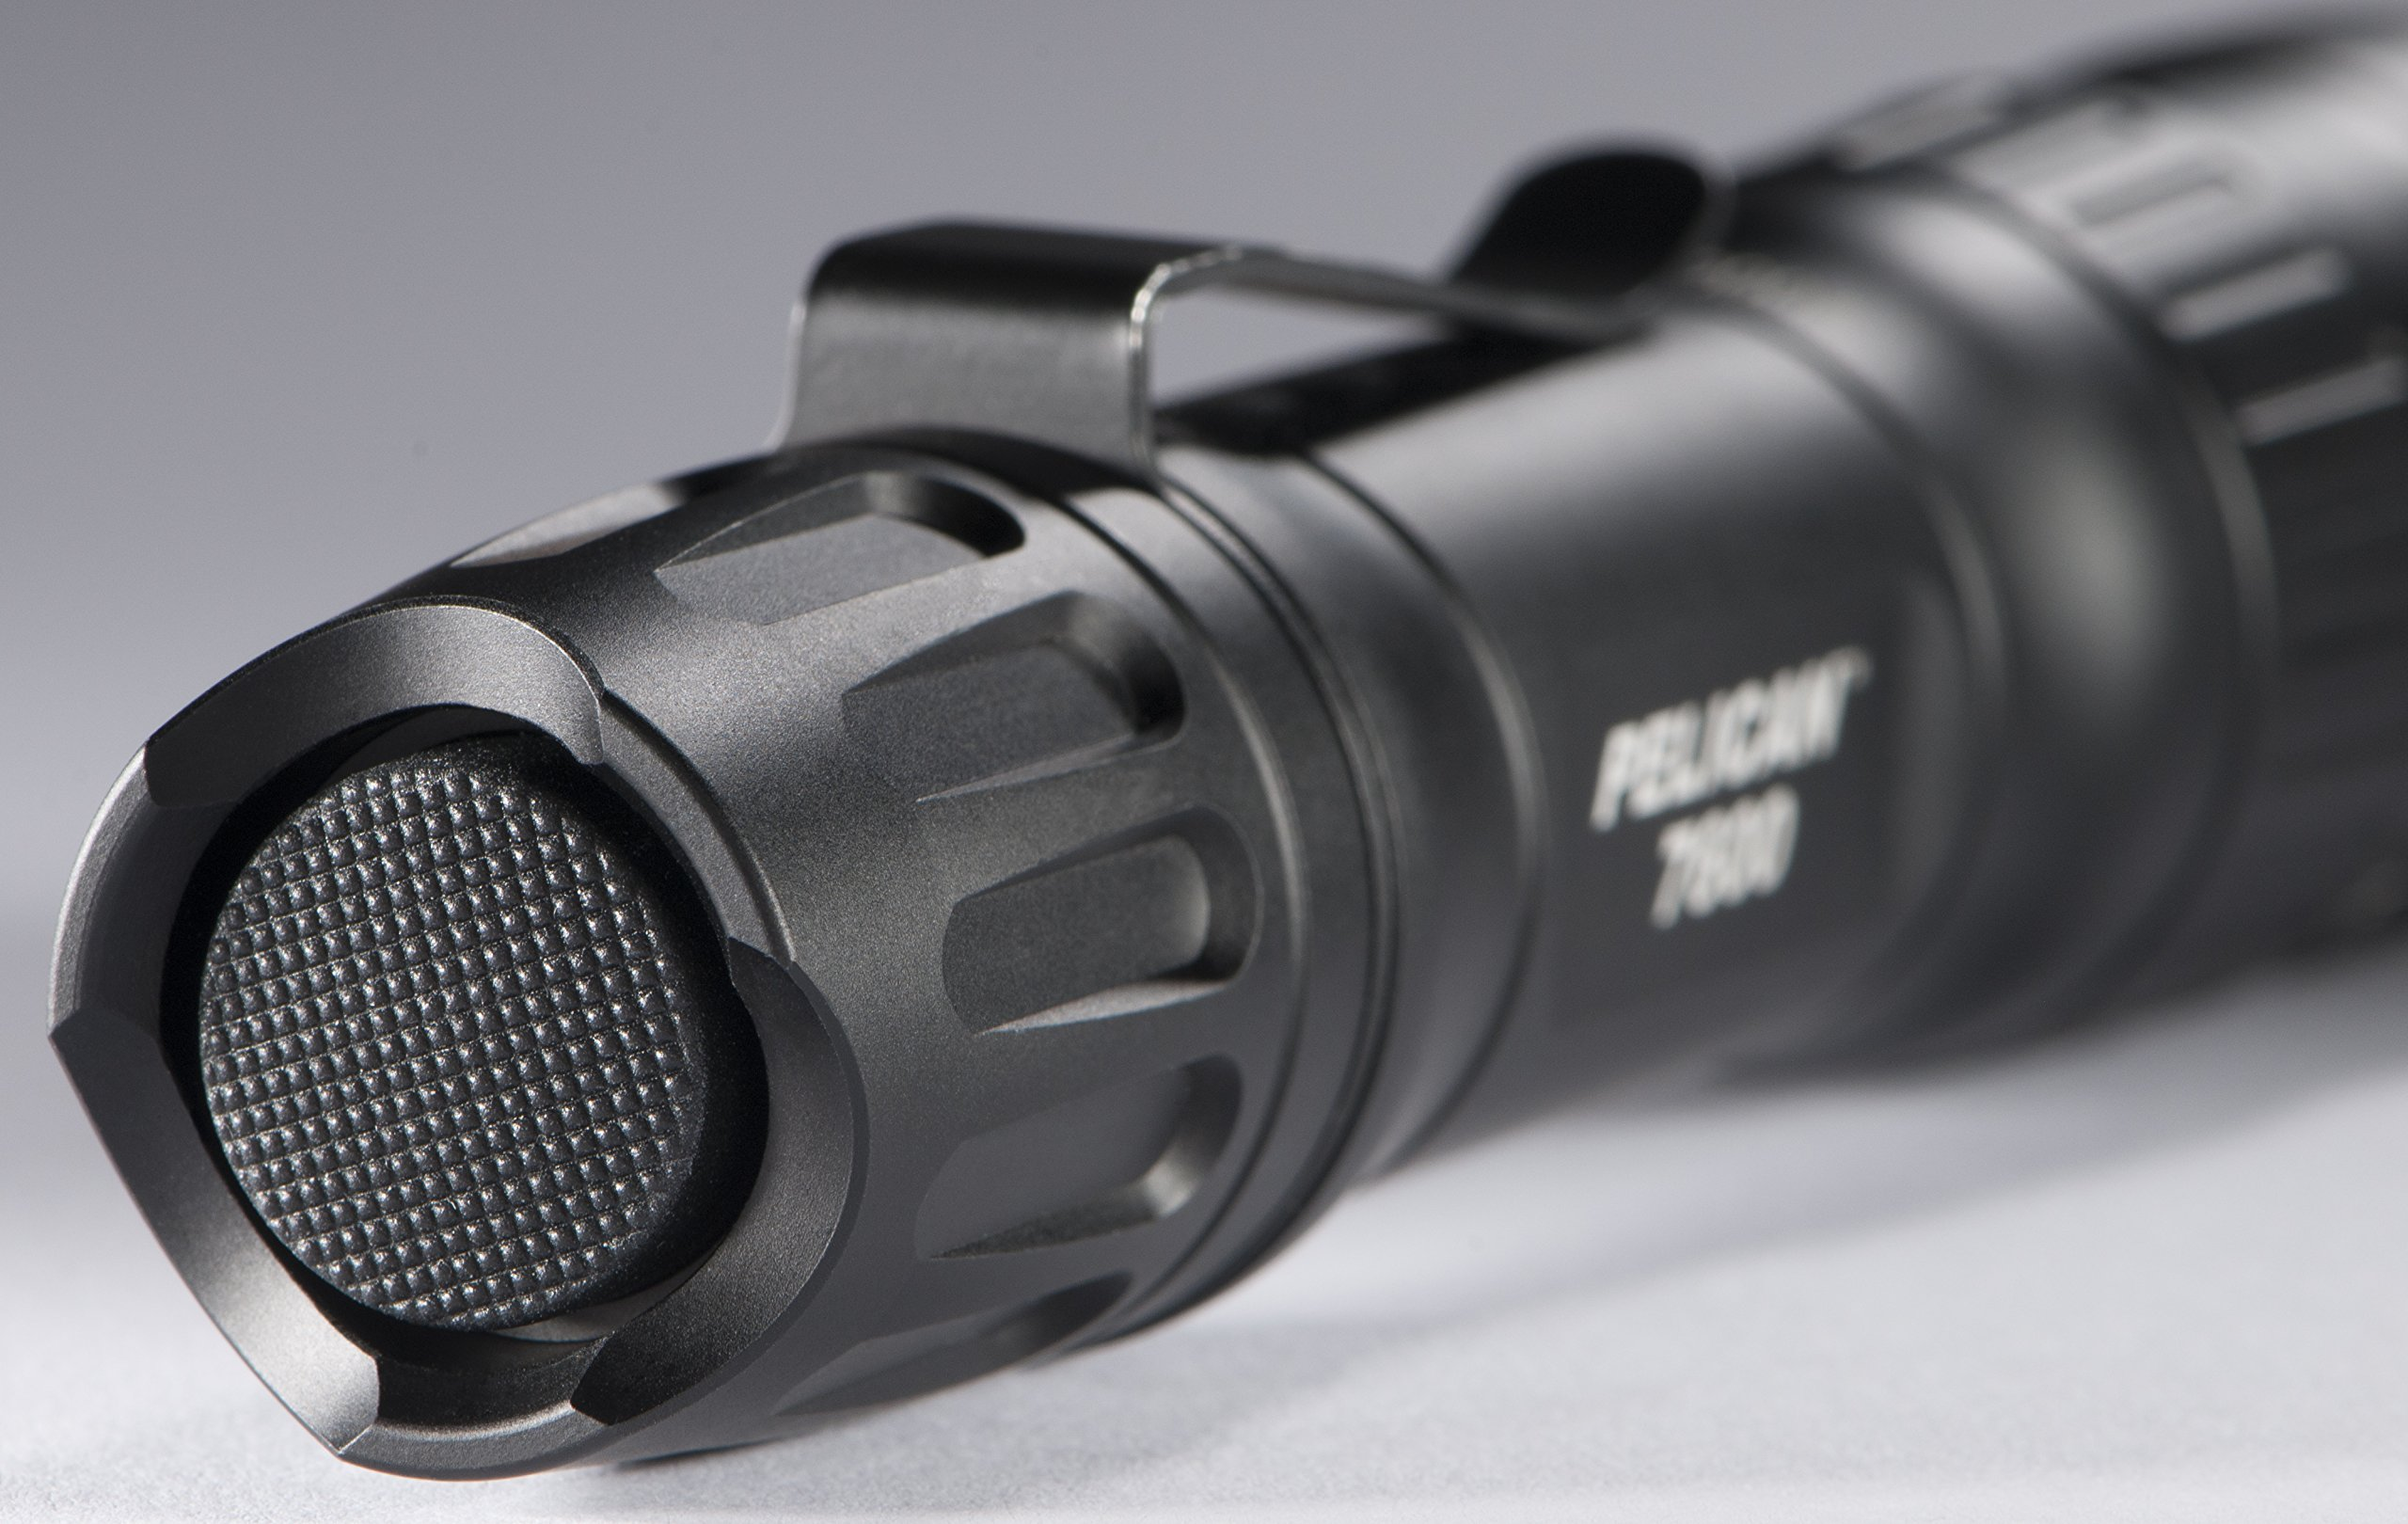 Pelican 7600 Rechargeable Tactical Flashlight (Black) by Pelican (Image #7)